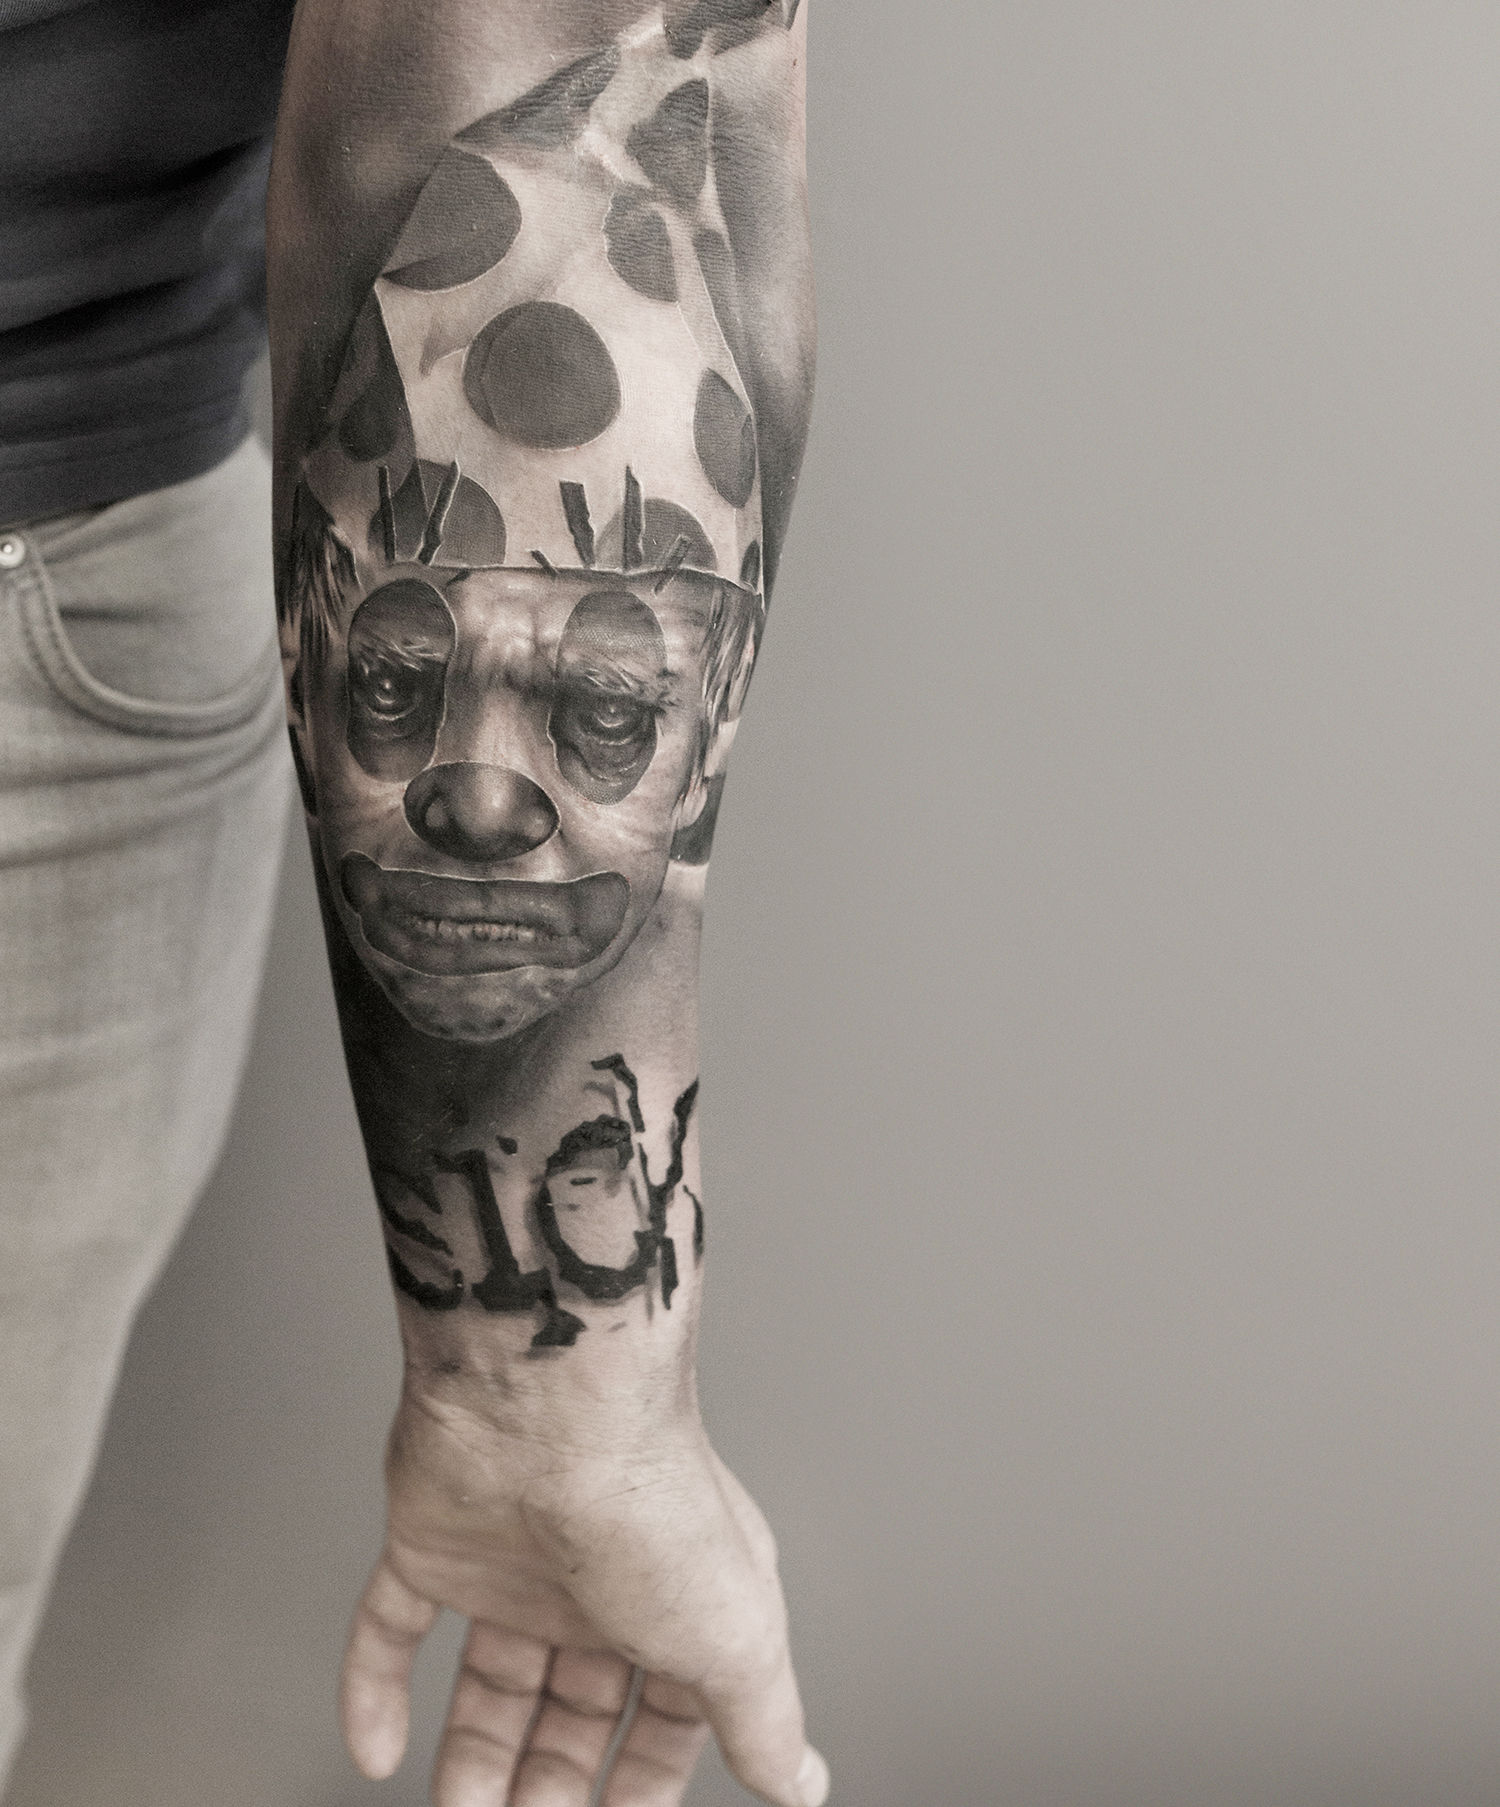 pope clown tattoo on arm